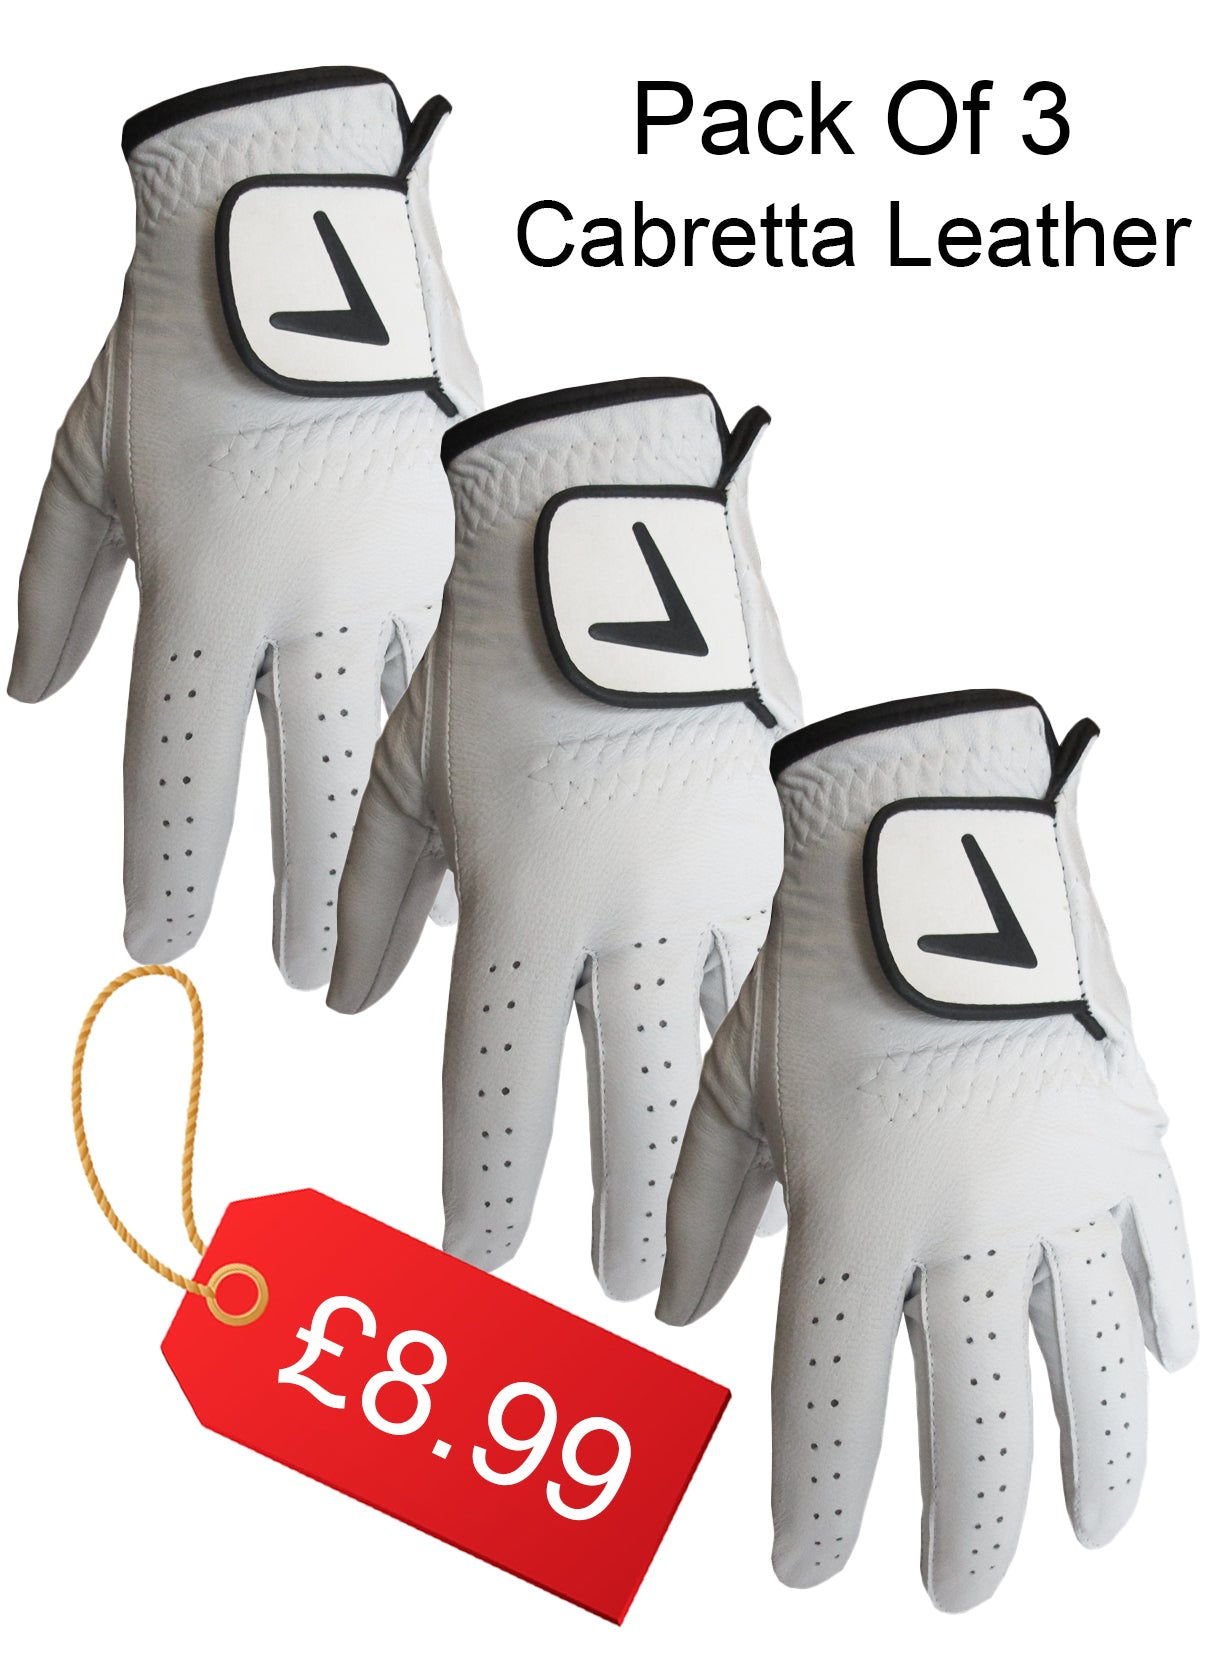 New V Tour Cabretta Leather Golf Gloves Pack Of  RRp £29.99